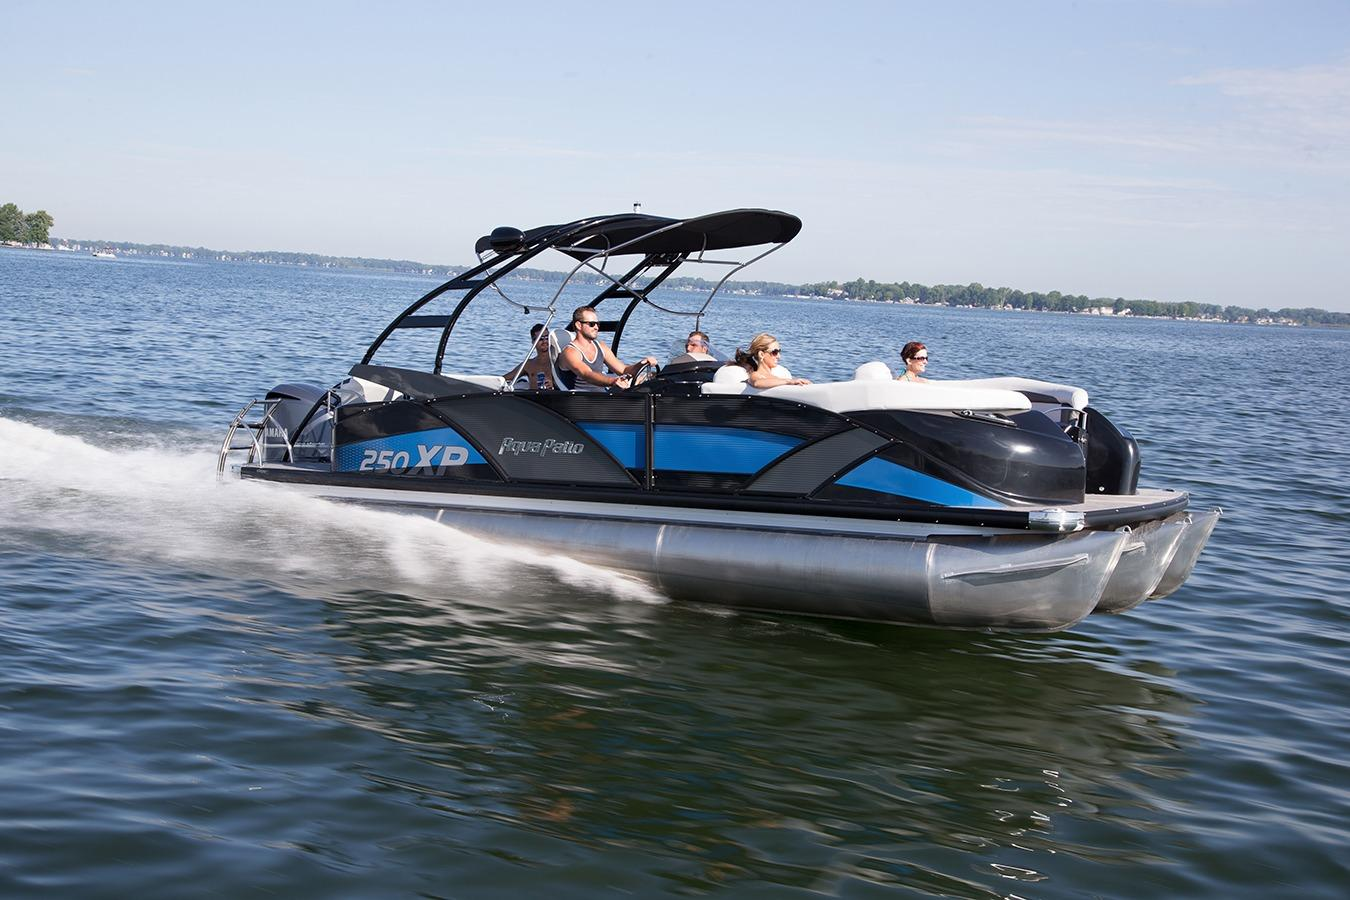 2015 Aqua Patio 250 Express Power Boats Outboard Kalamazoo – Aqua Patio